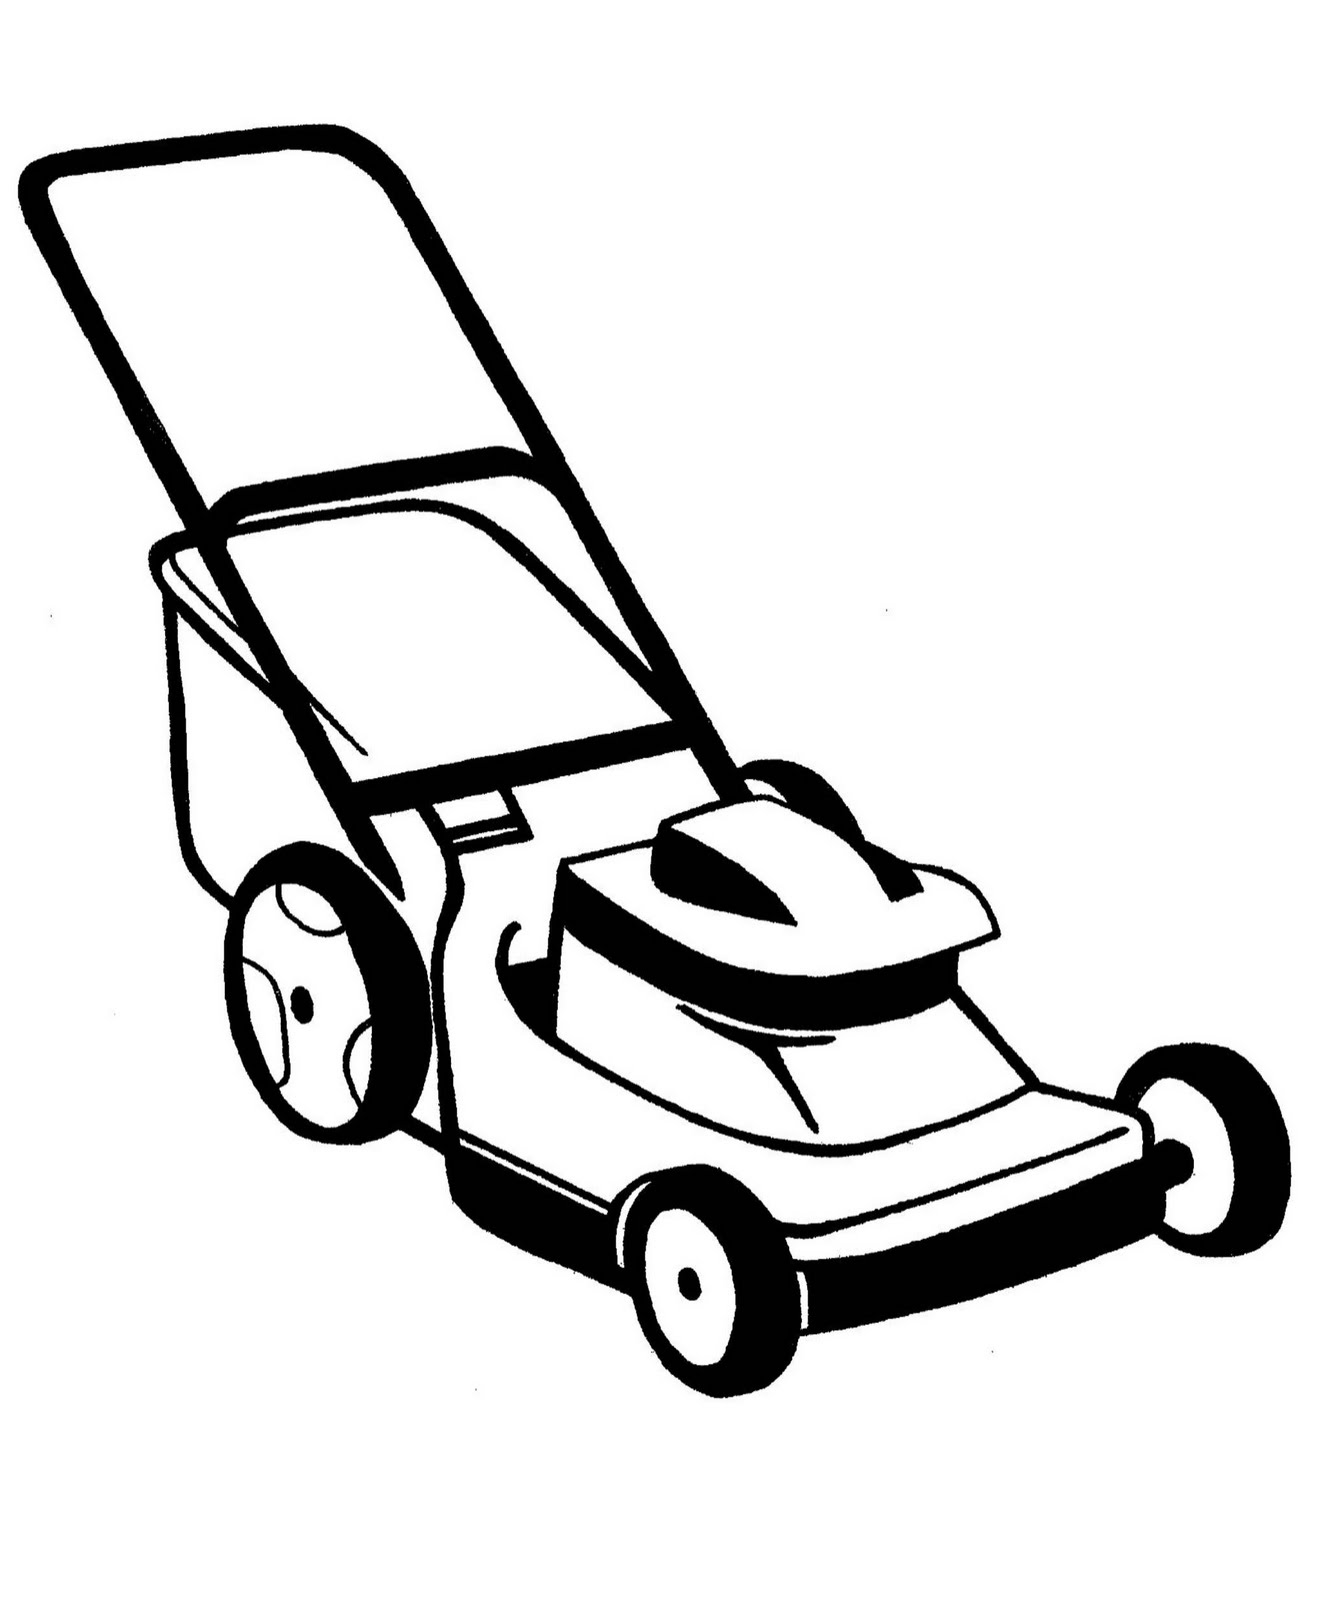 Lawn care clipart outline. Mowing silhouette at getdrawings